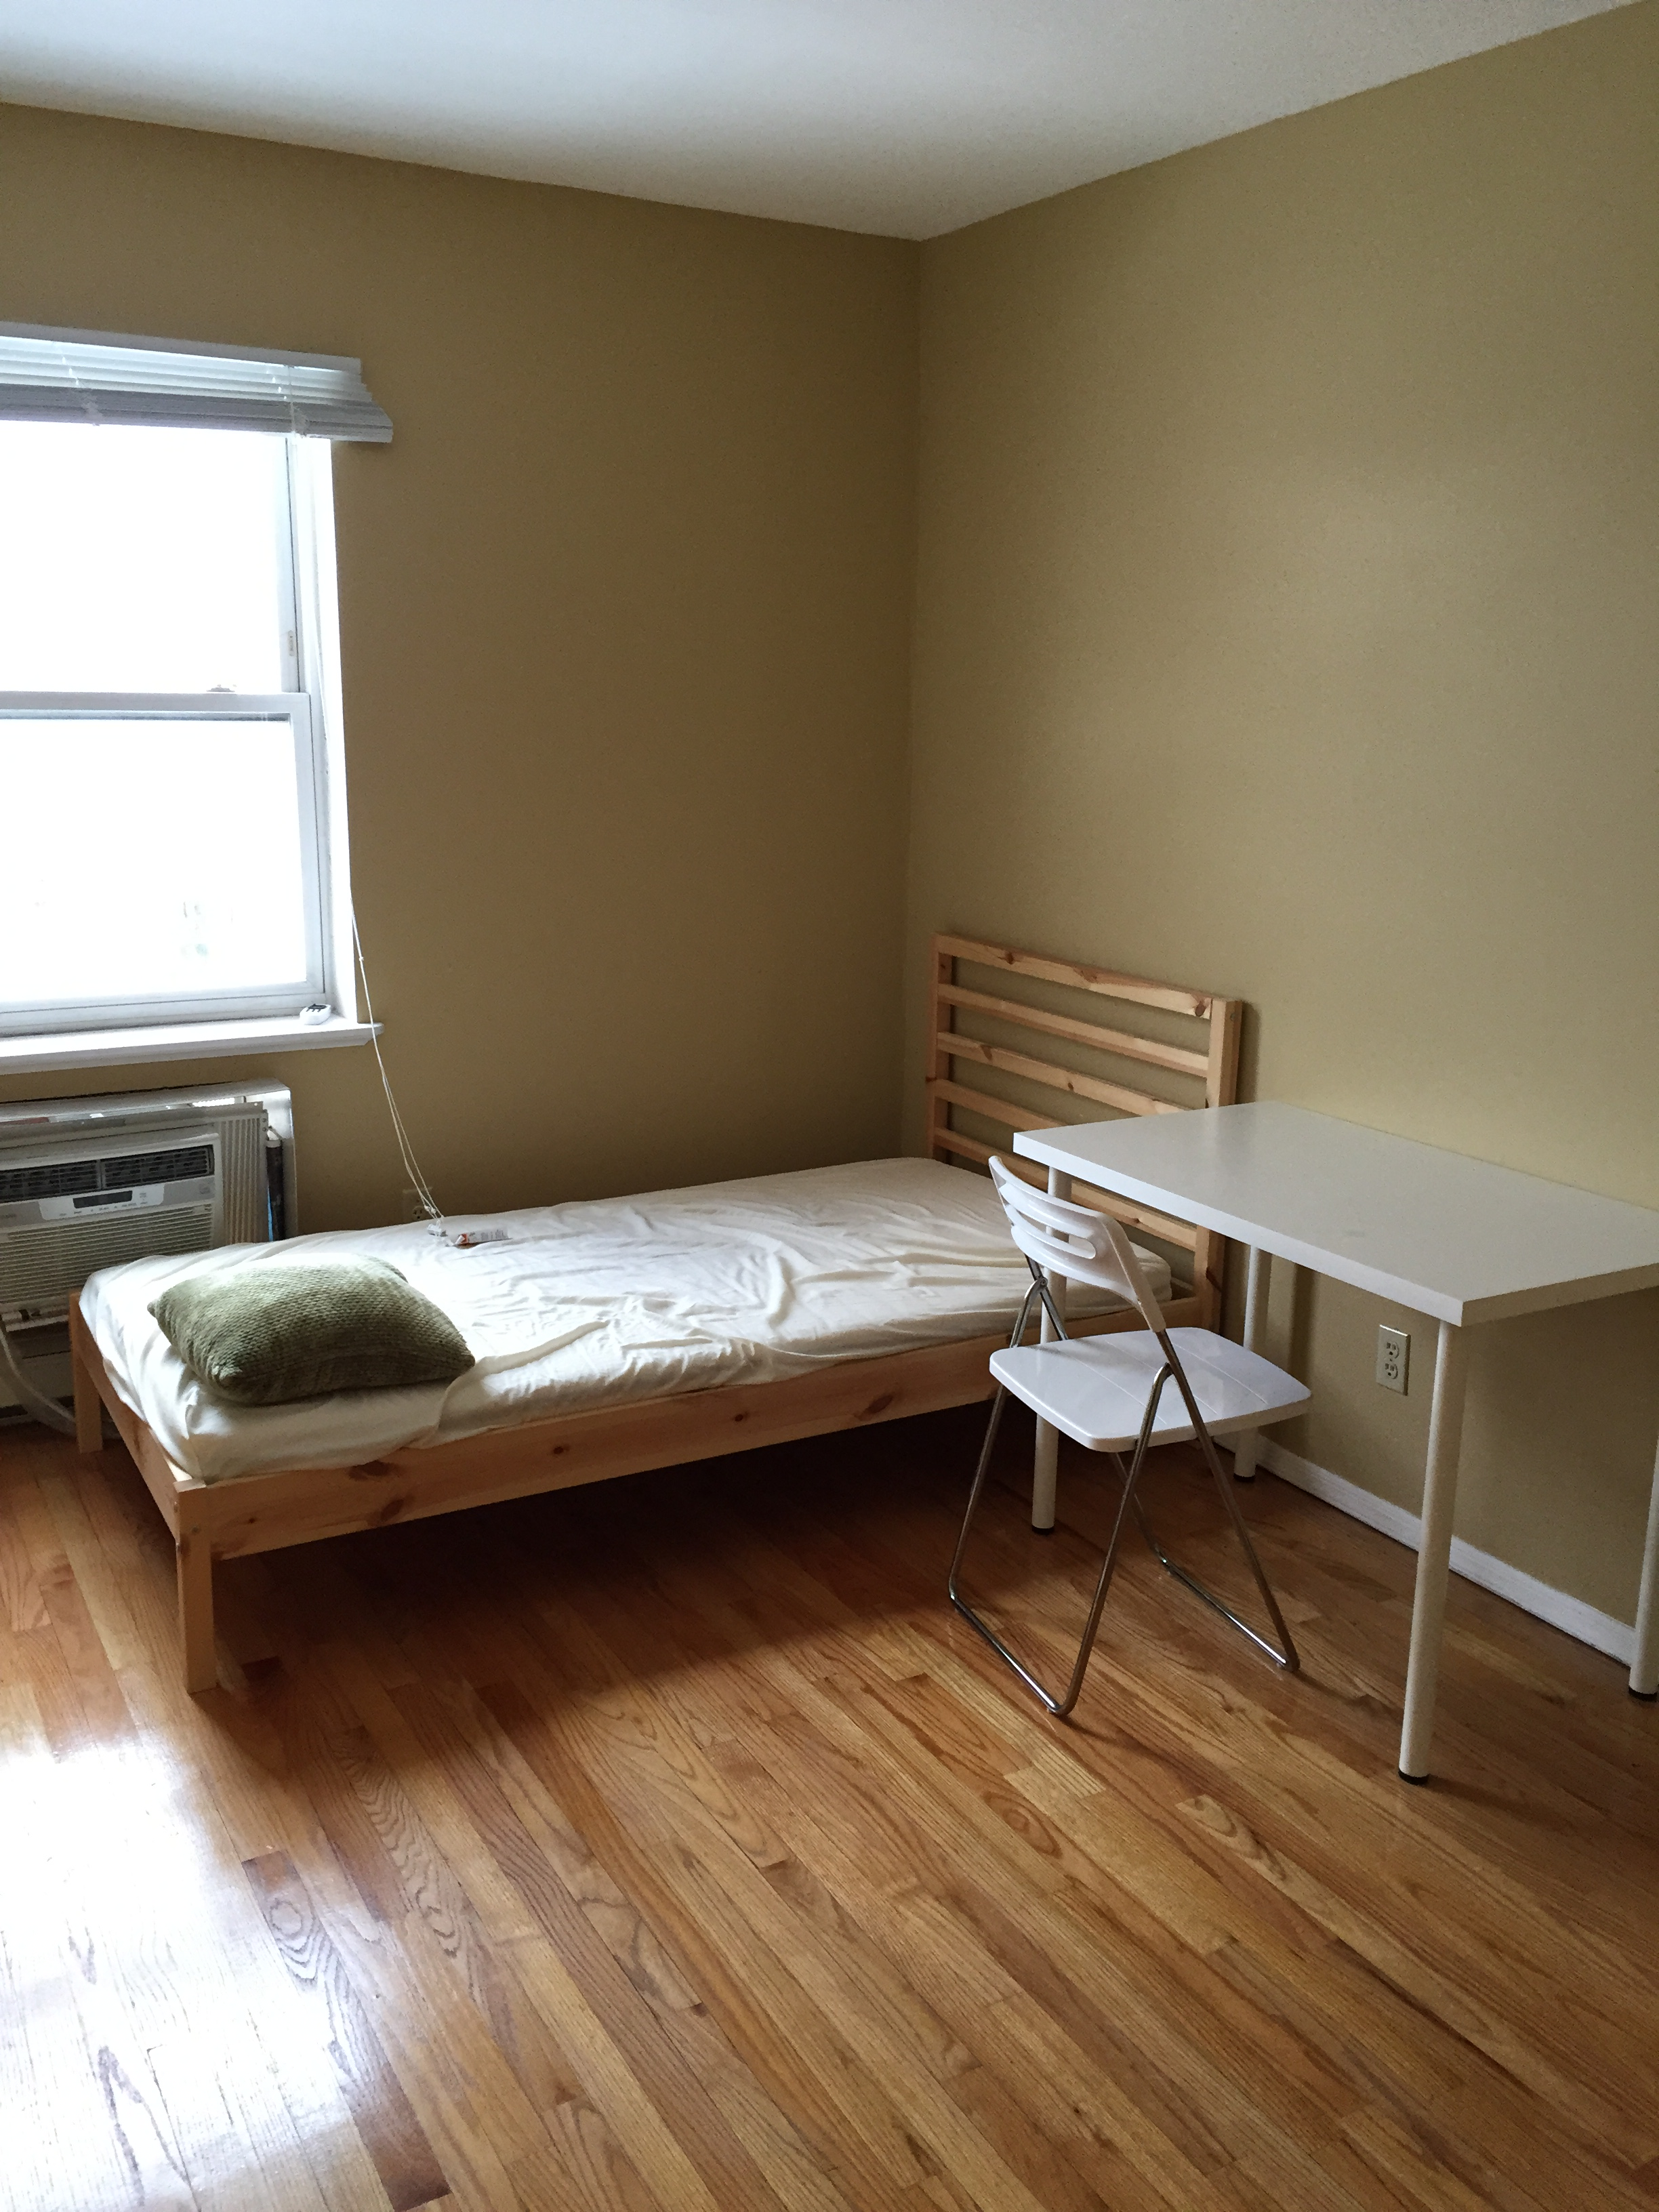 150 Sq Ft Room For Rent 302 Jwong Boutique